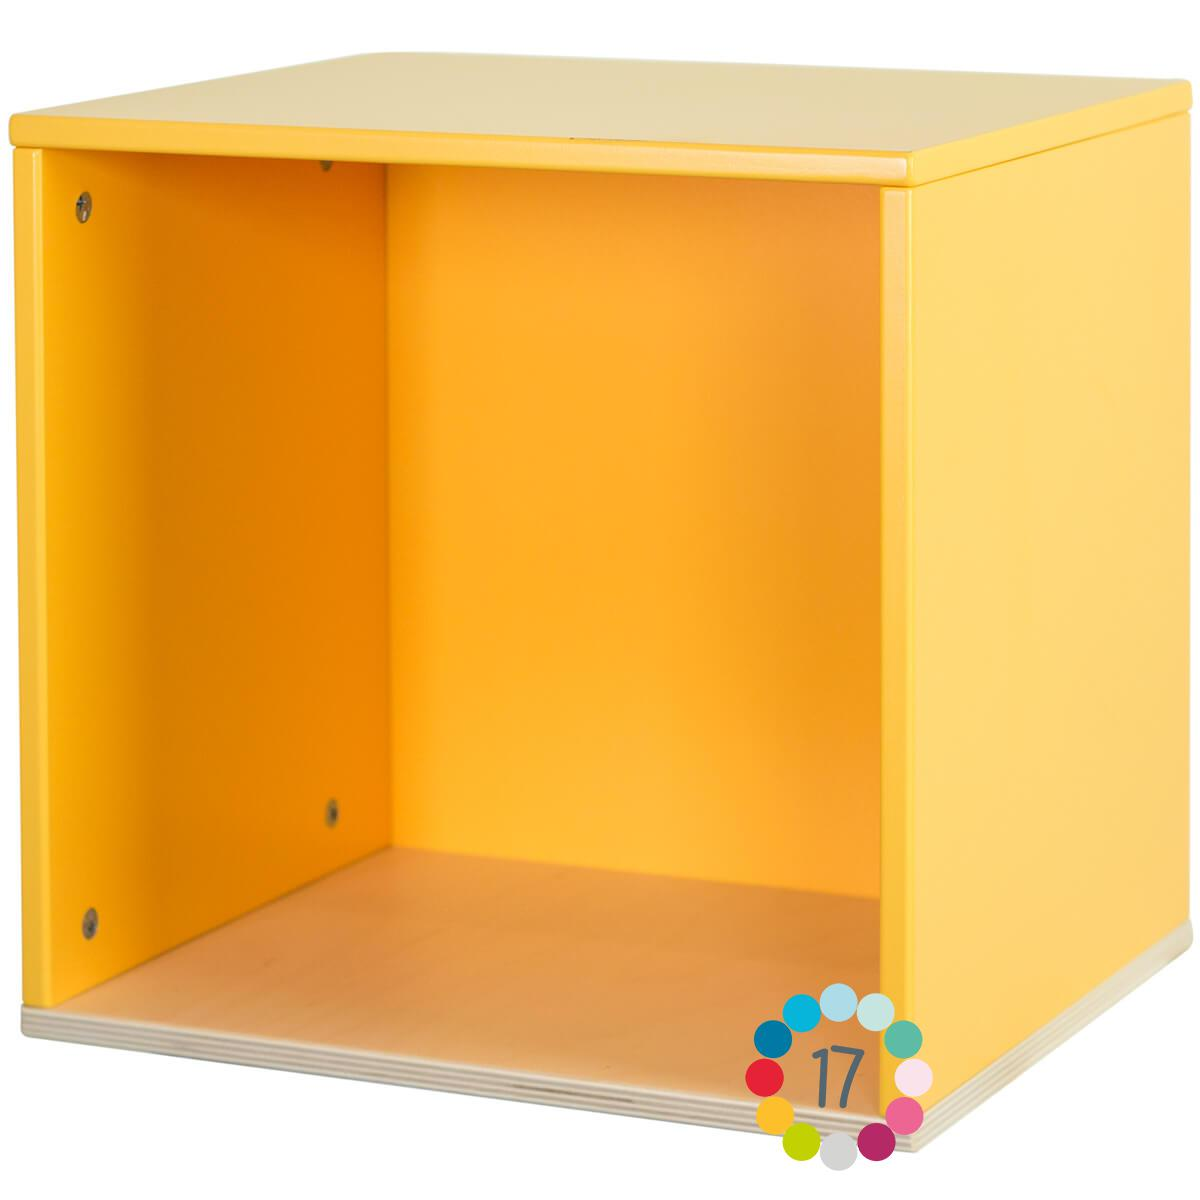 Cube mural COLORFLEX Abitare Kids nectar yellow